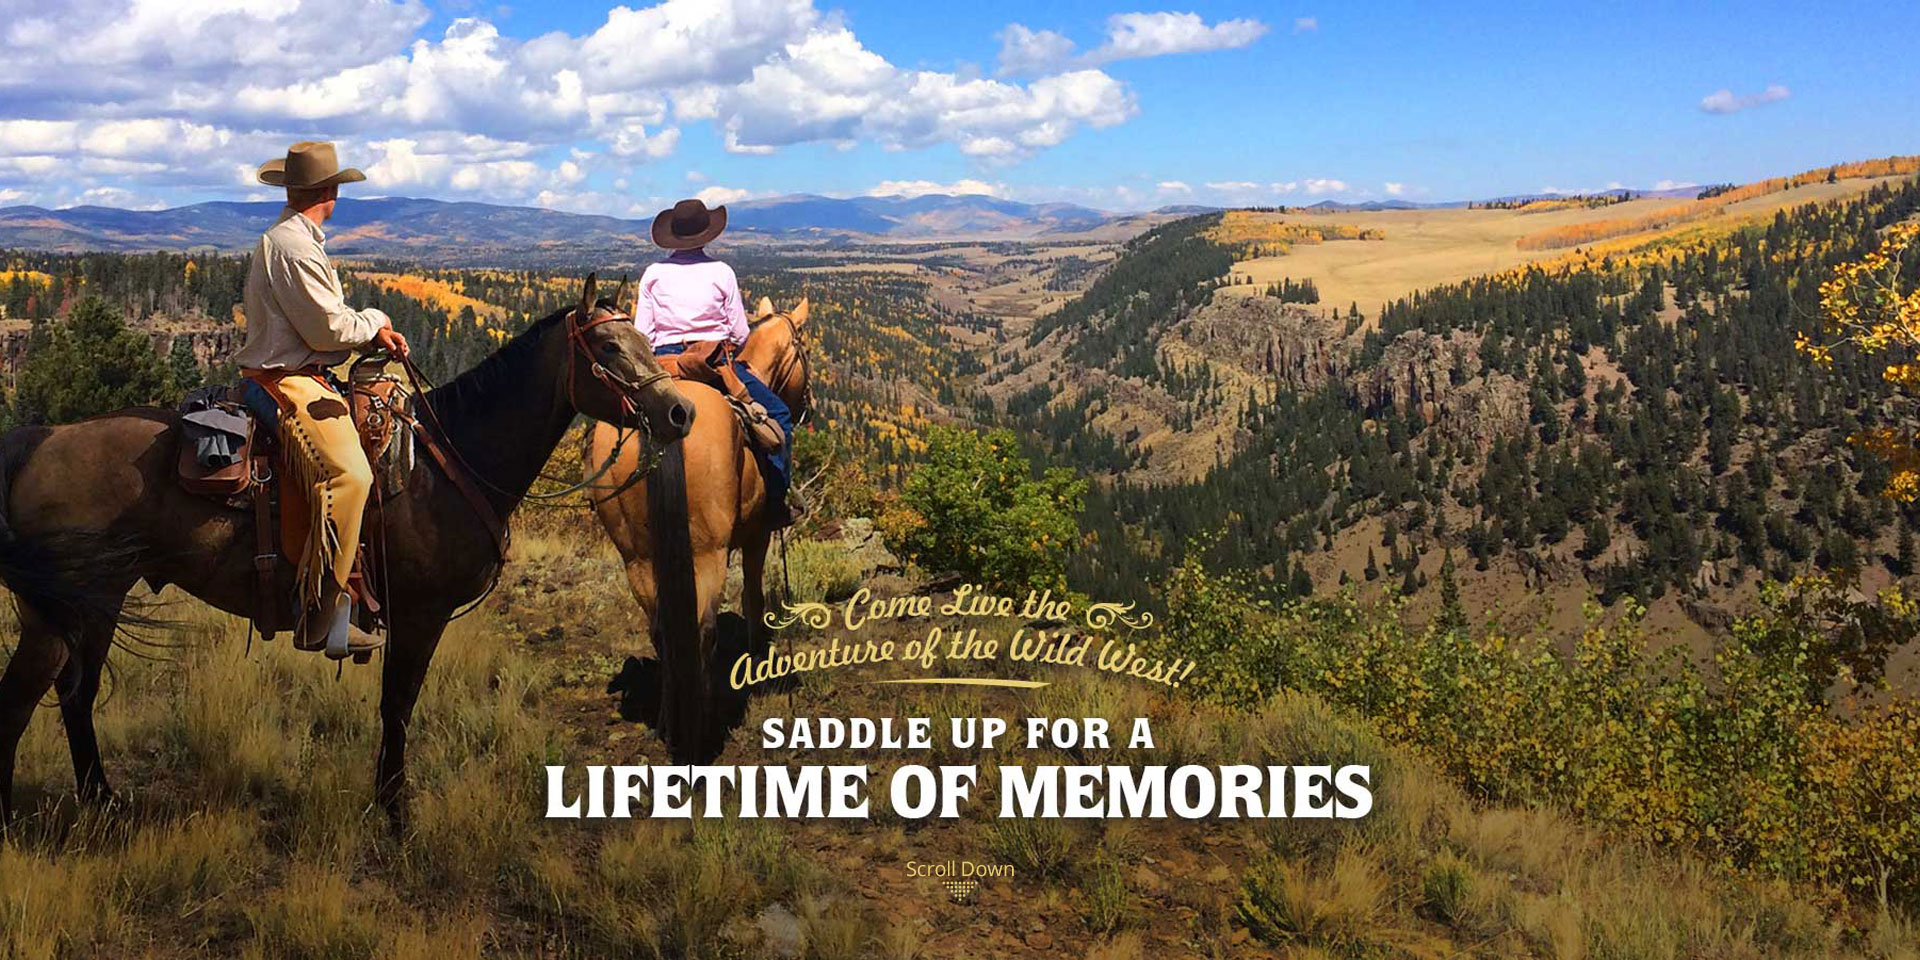 Saddle Up for a Lifetime of Memories